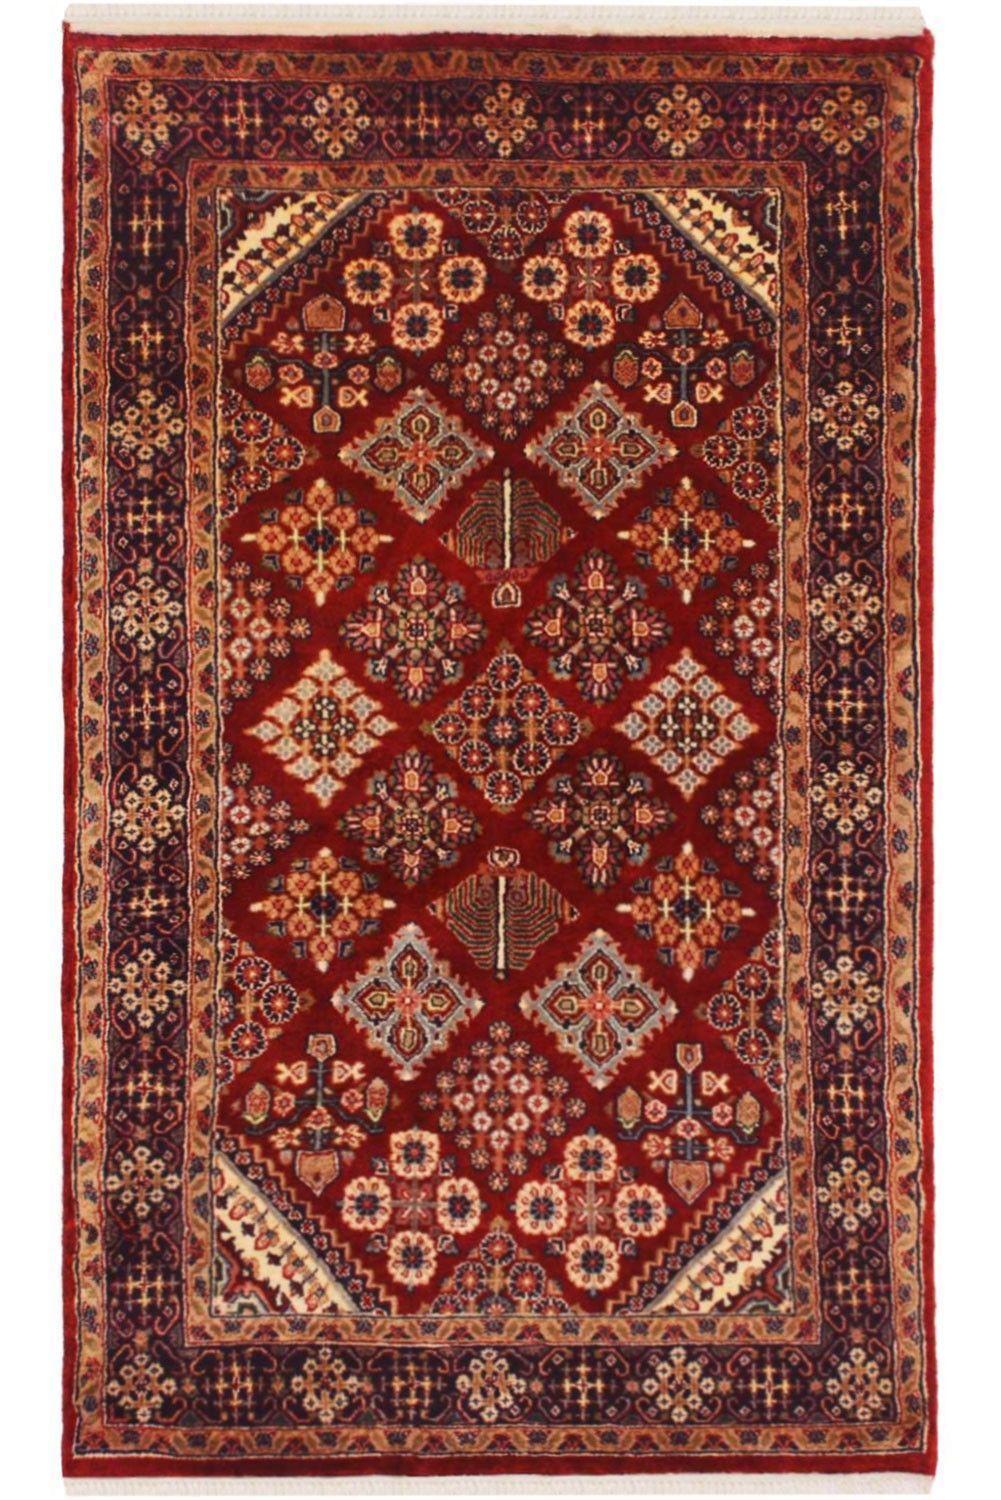 Laal Heera Afshar Rug Wool Carpets And Rugs Online Beyond